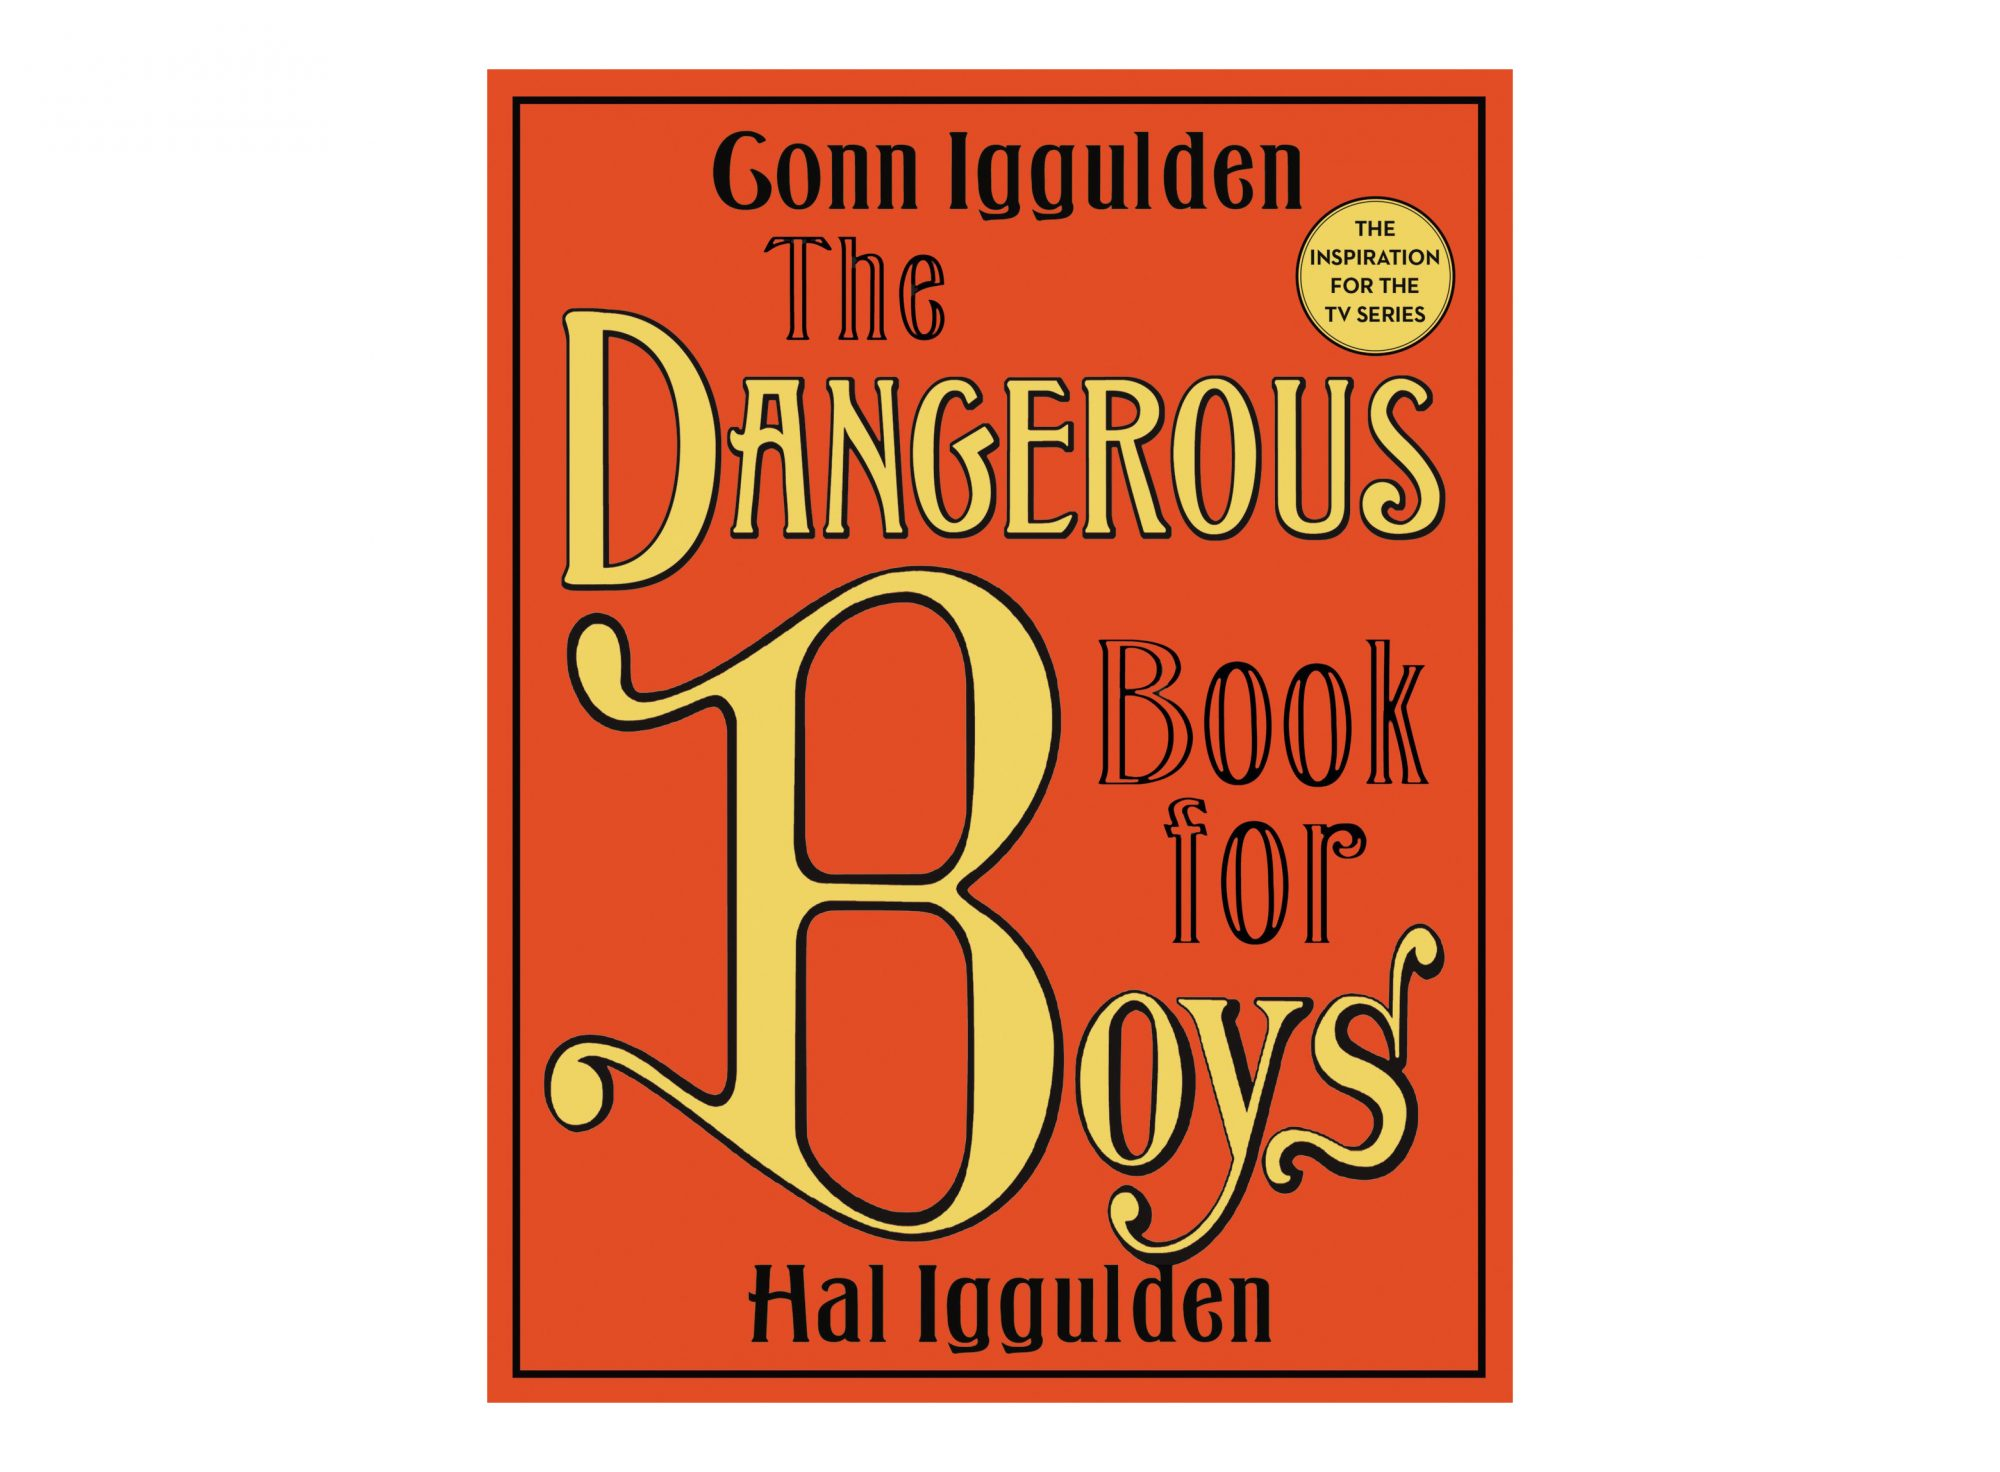 The Dangerous Book For Boys, by Hal Iggulden